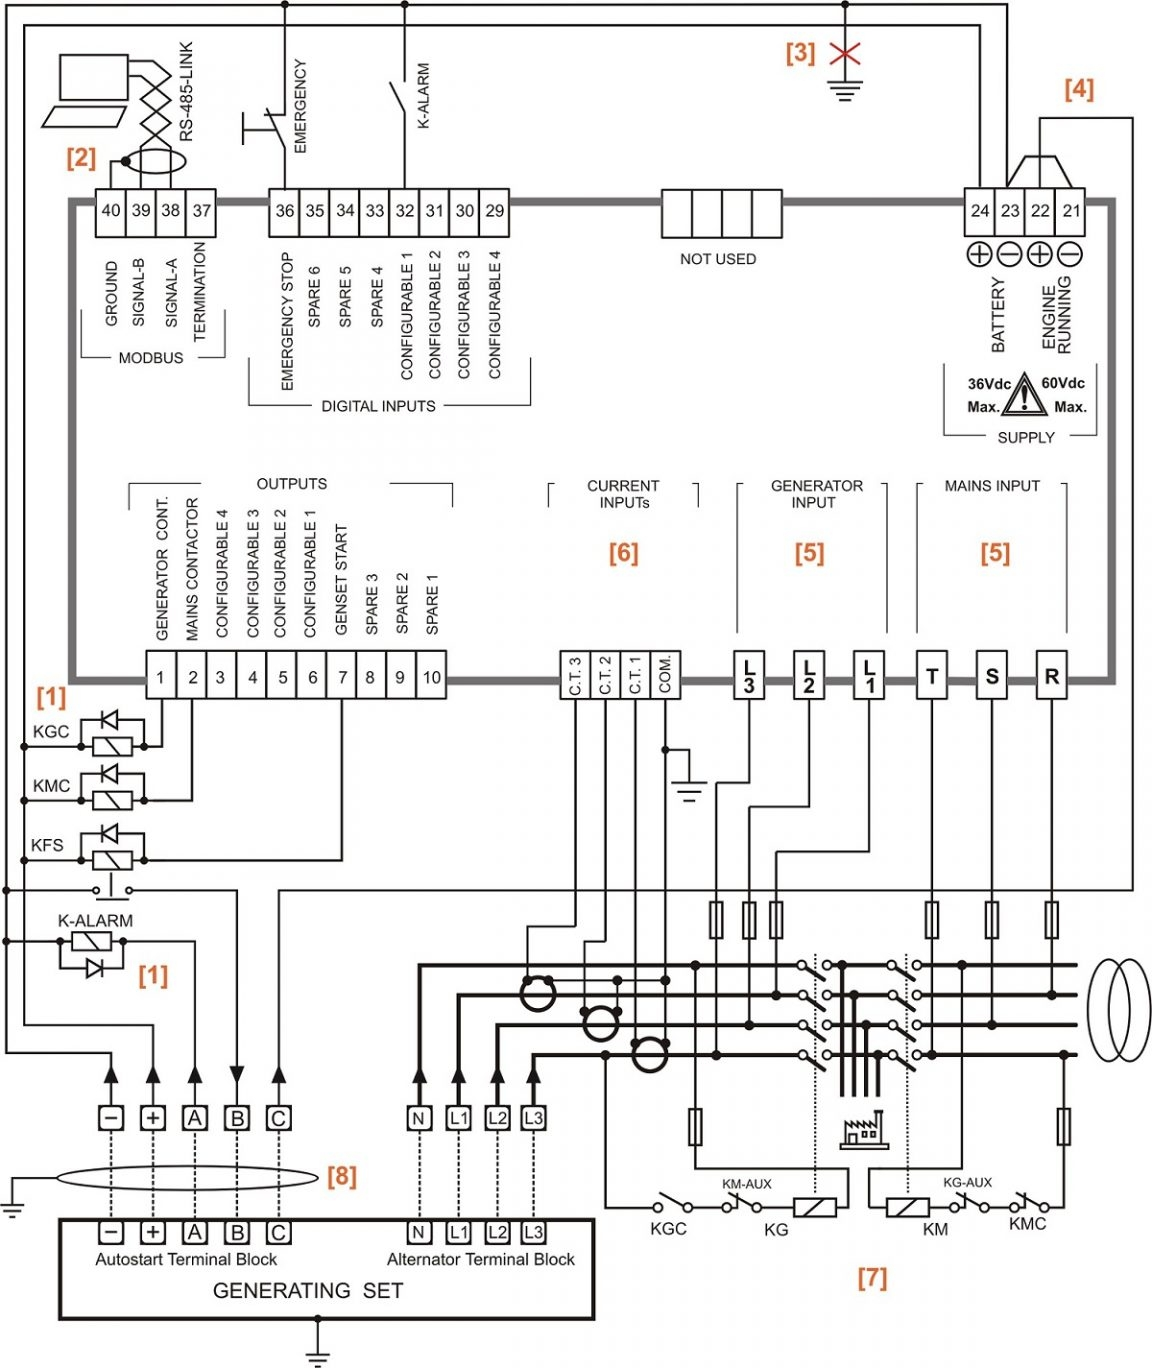 asco 7000 series ats wiring diagram Download-Asco 7000 Series Automatic Transfer Switch Wiring Diagram Fresh Diagramuto Transfer Switchts Workingnd Control Panel Wiring 1-d